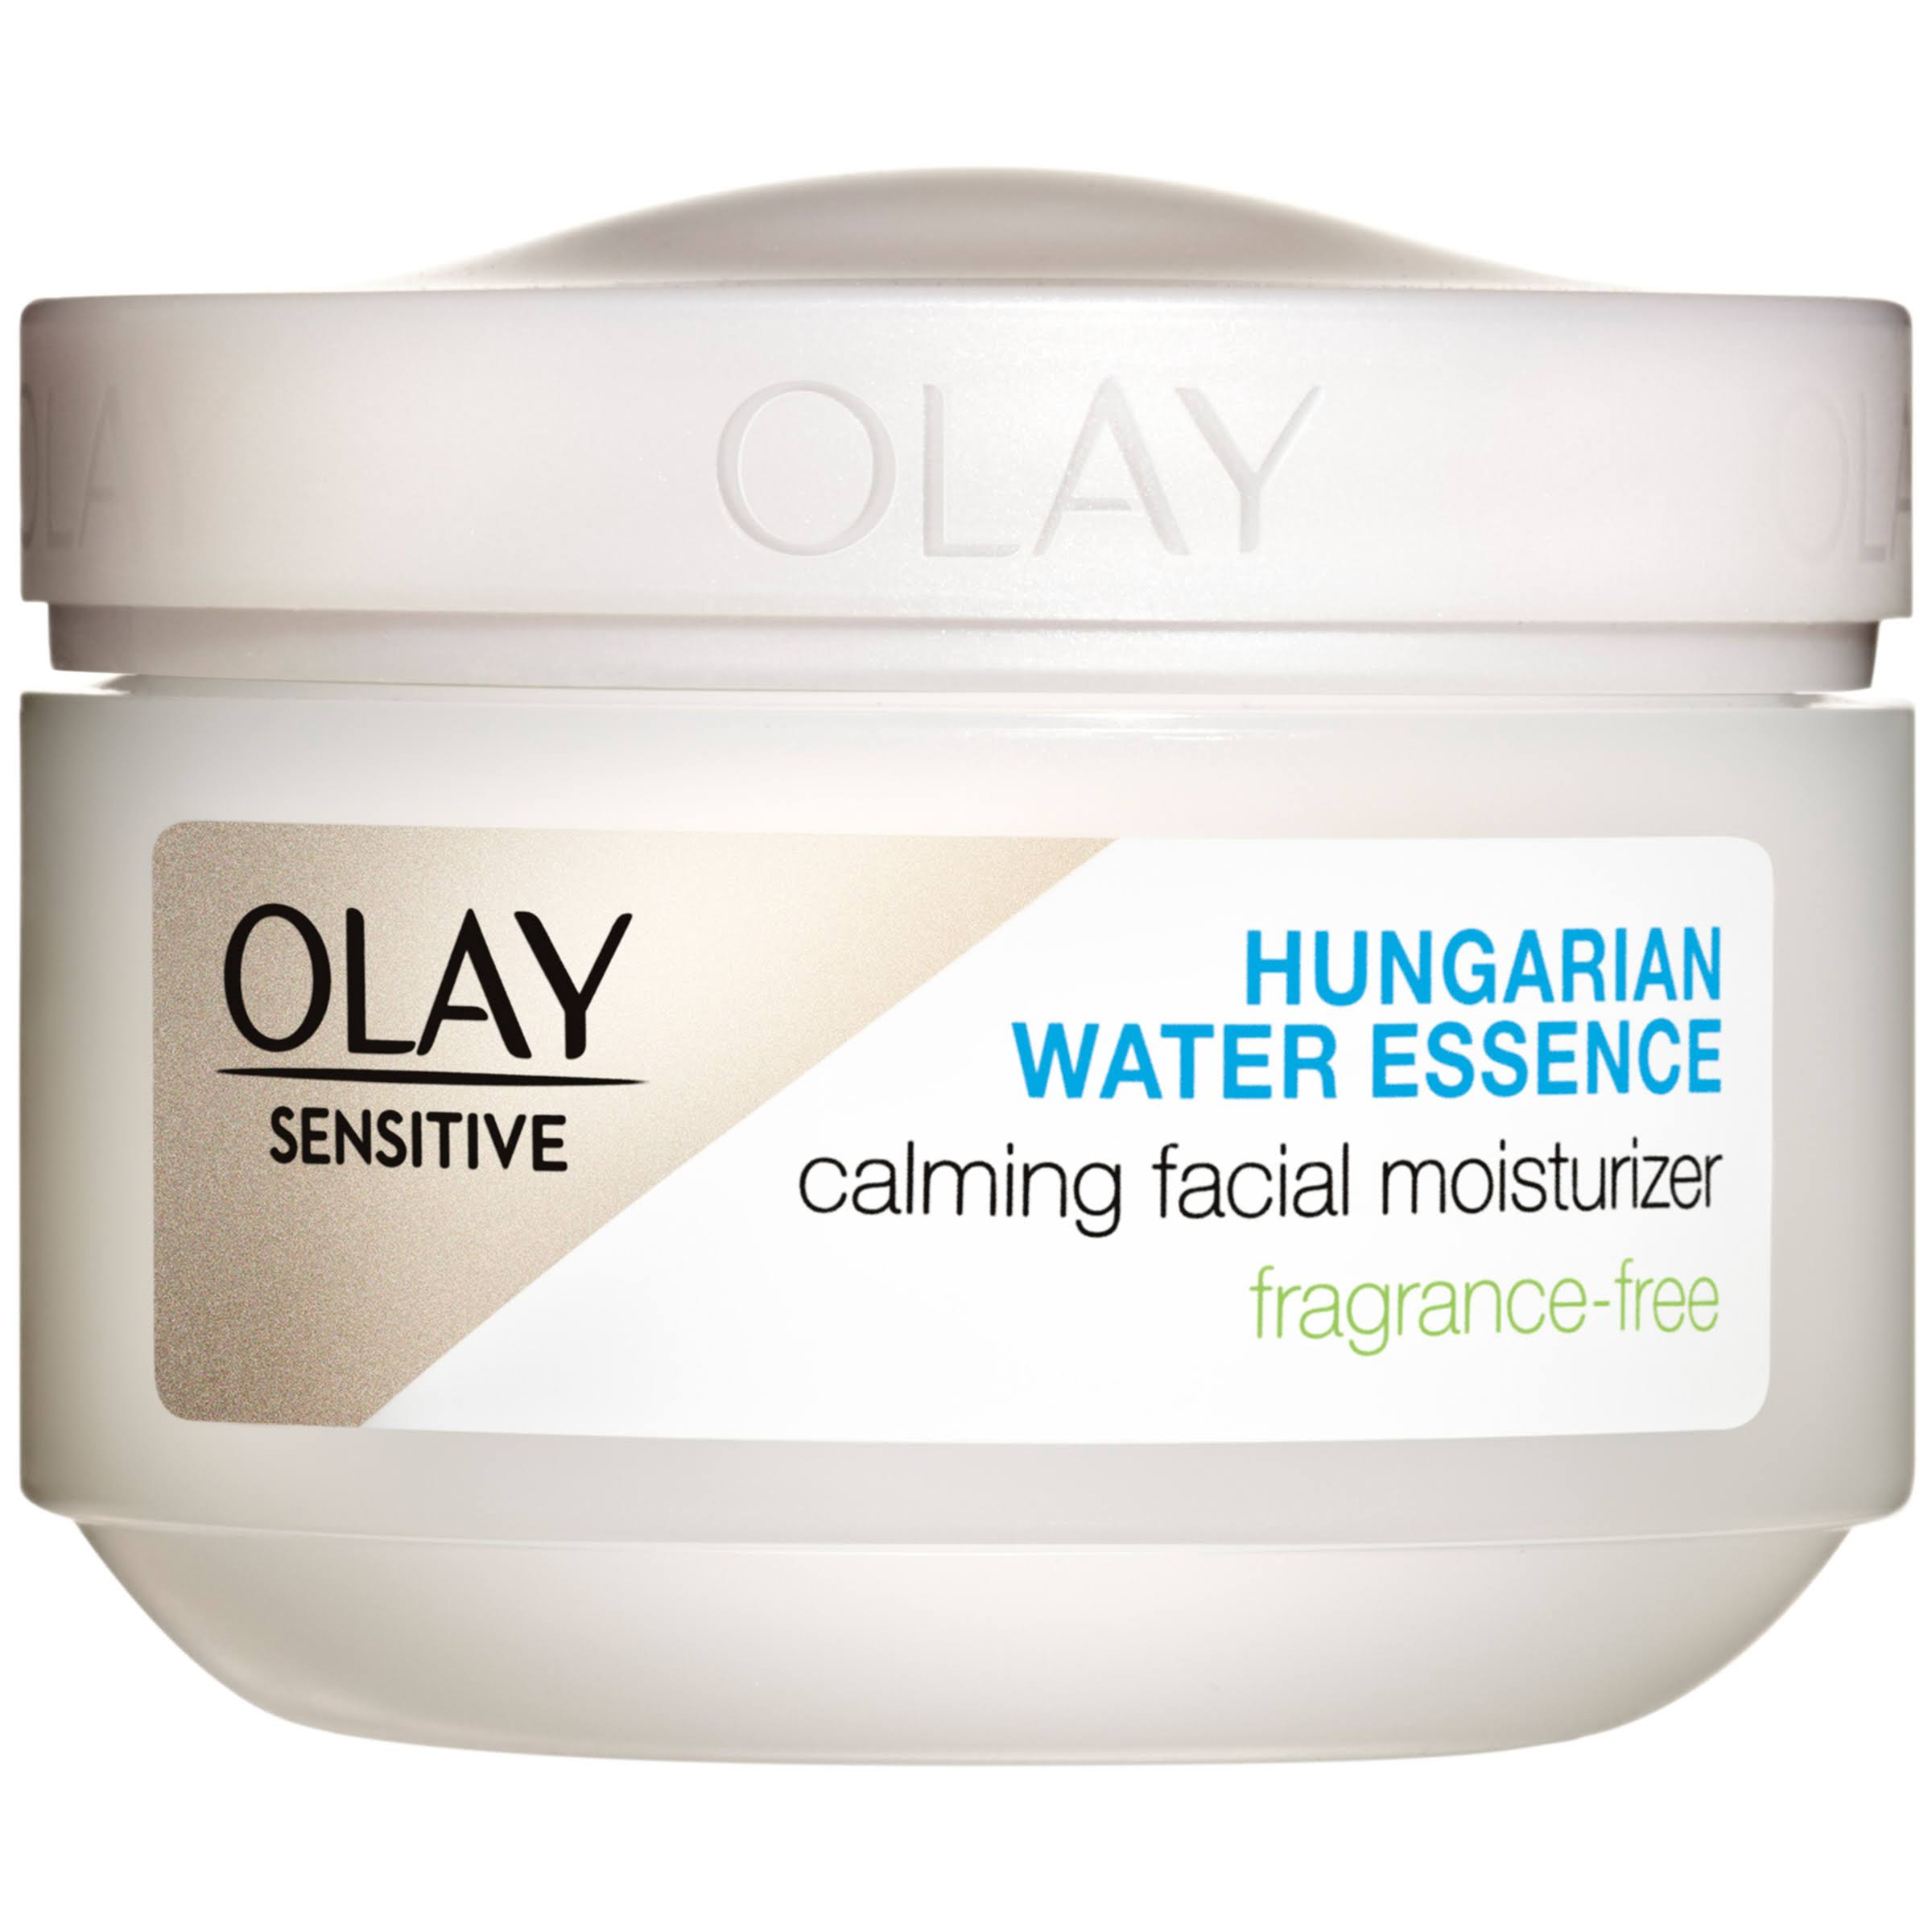 Olay Sensitive Calming Facial Moisturizer, Fragrance-Free, 2.5 fl oz